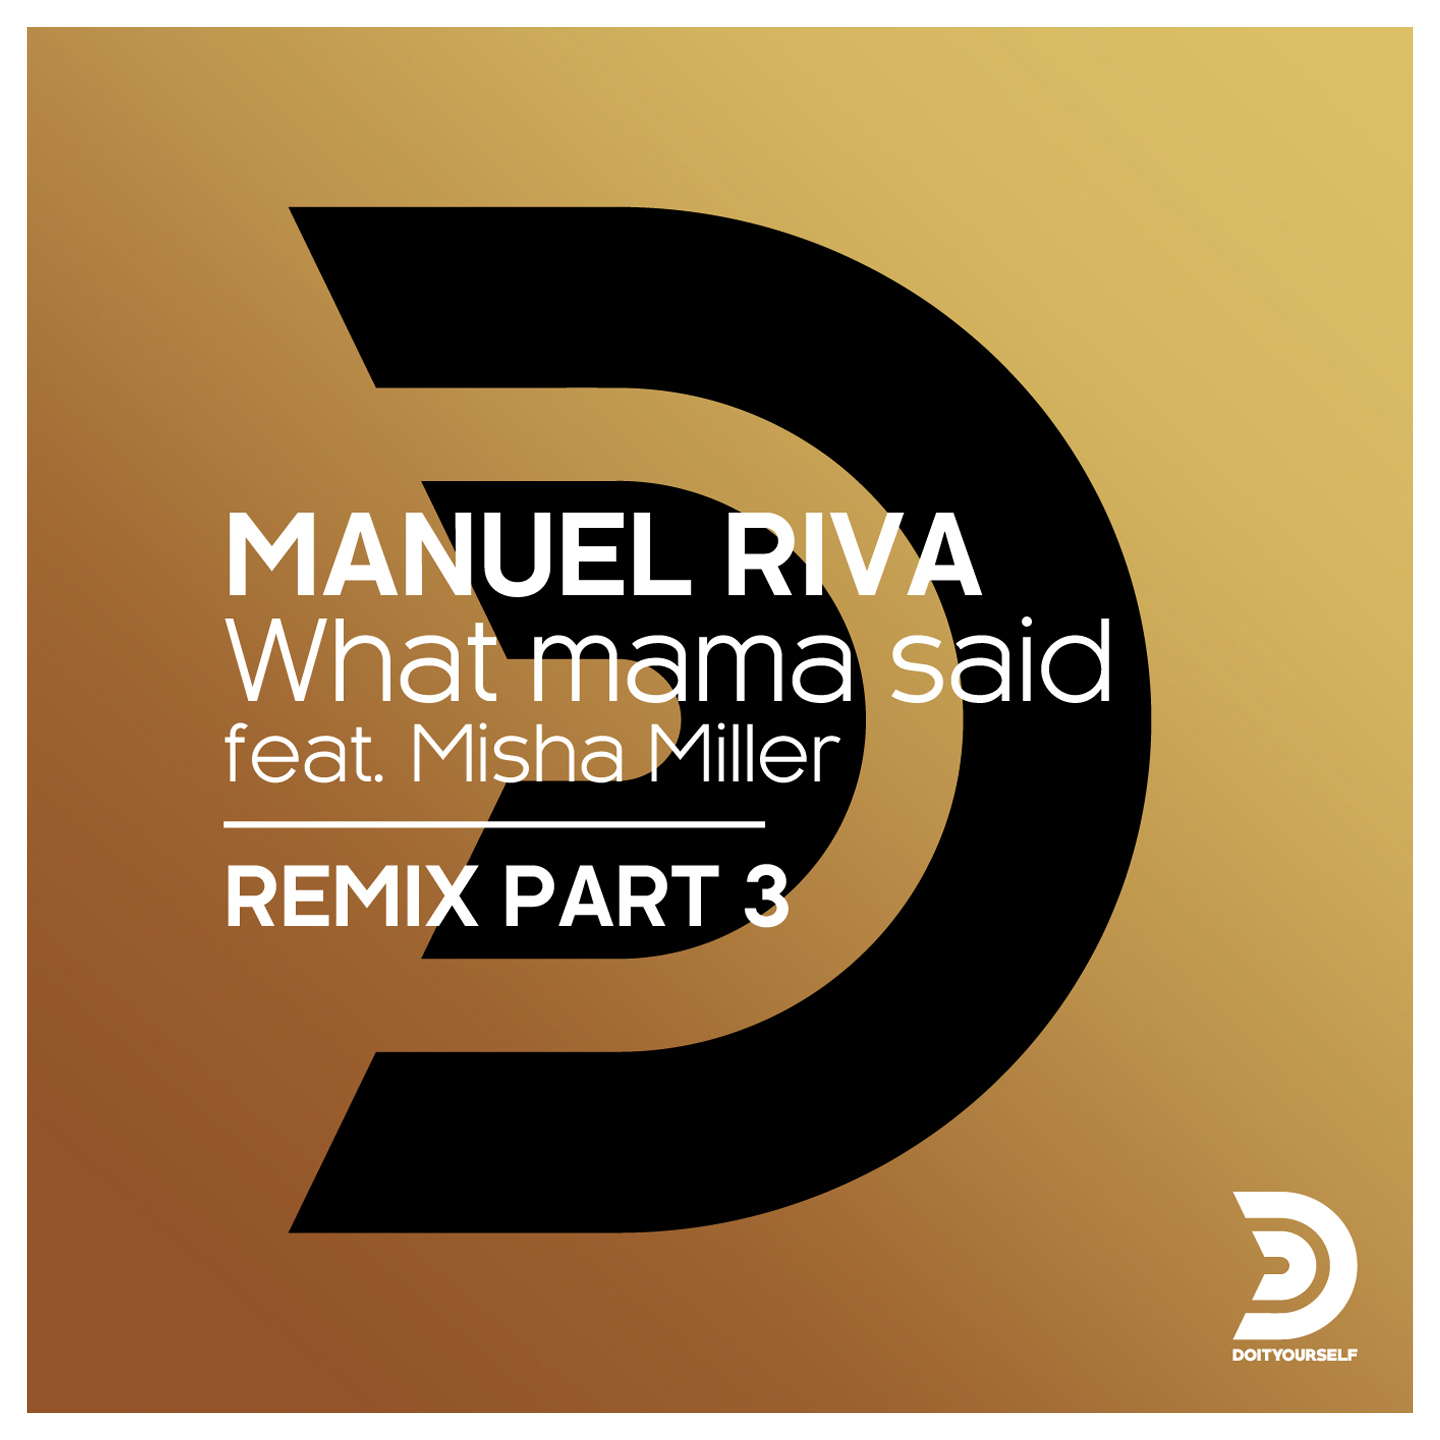 WHAT MAMA SAID (FEAT. MISHA MILLER) (REMIX PART 3)